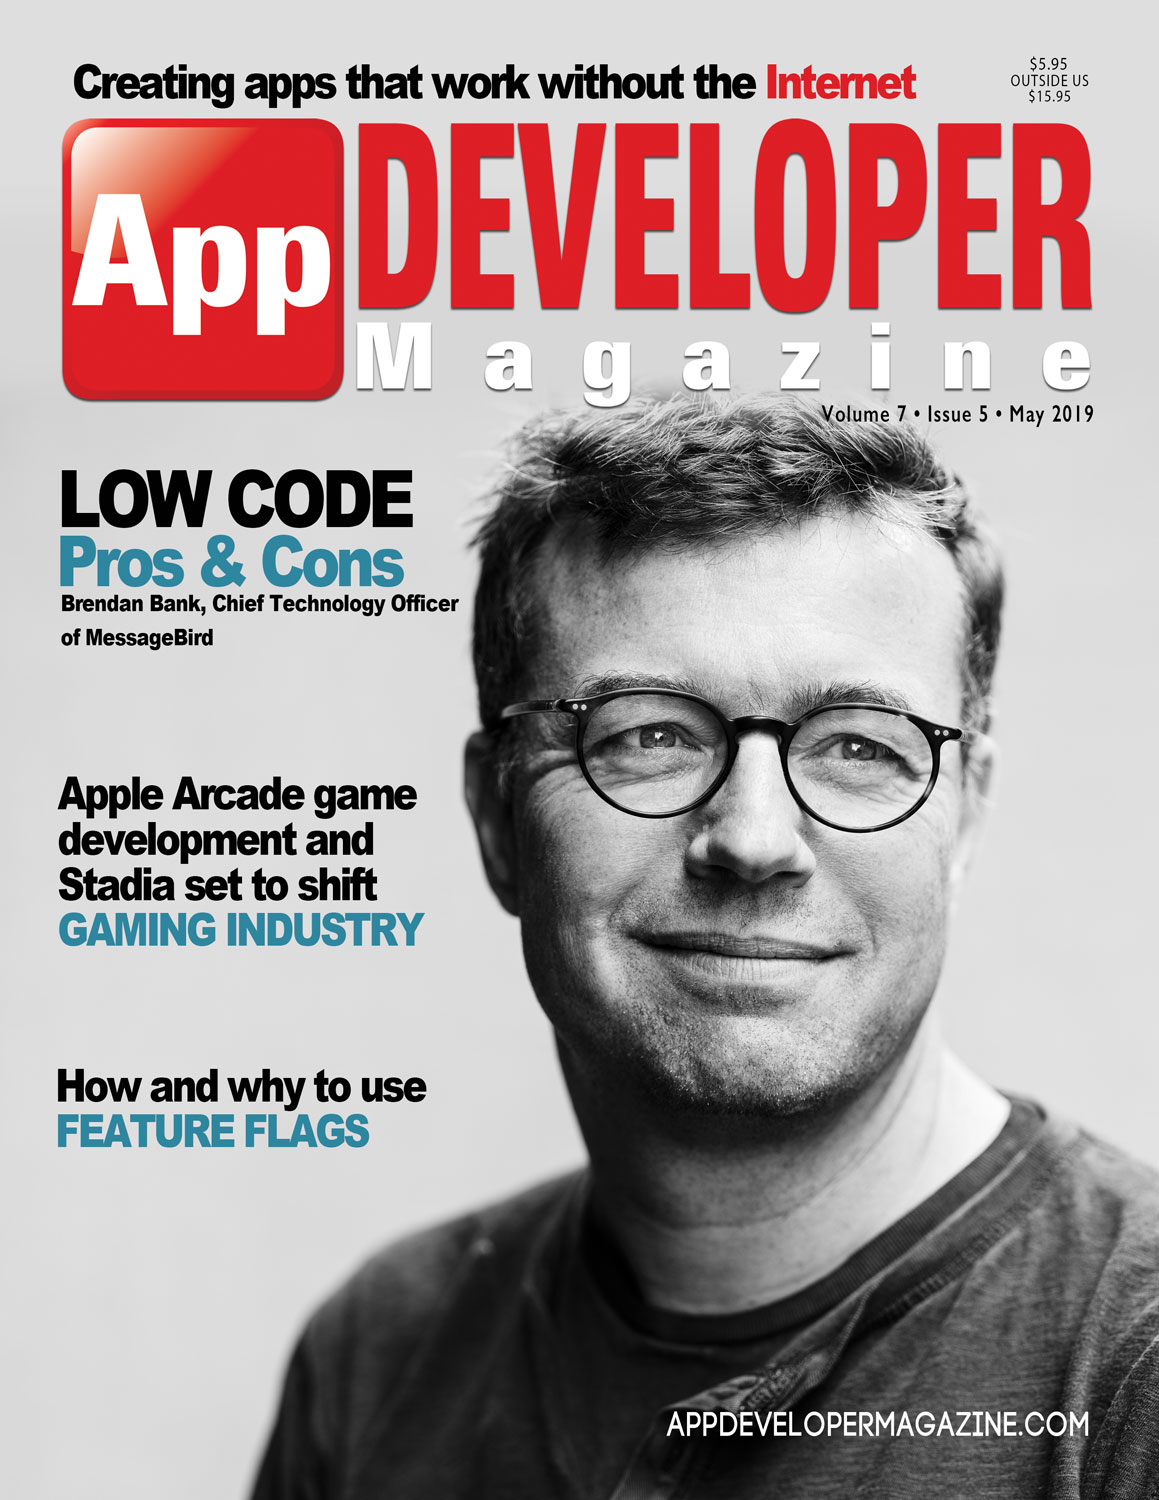 App Developer Magazine May 2019 Cover